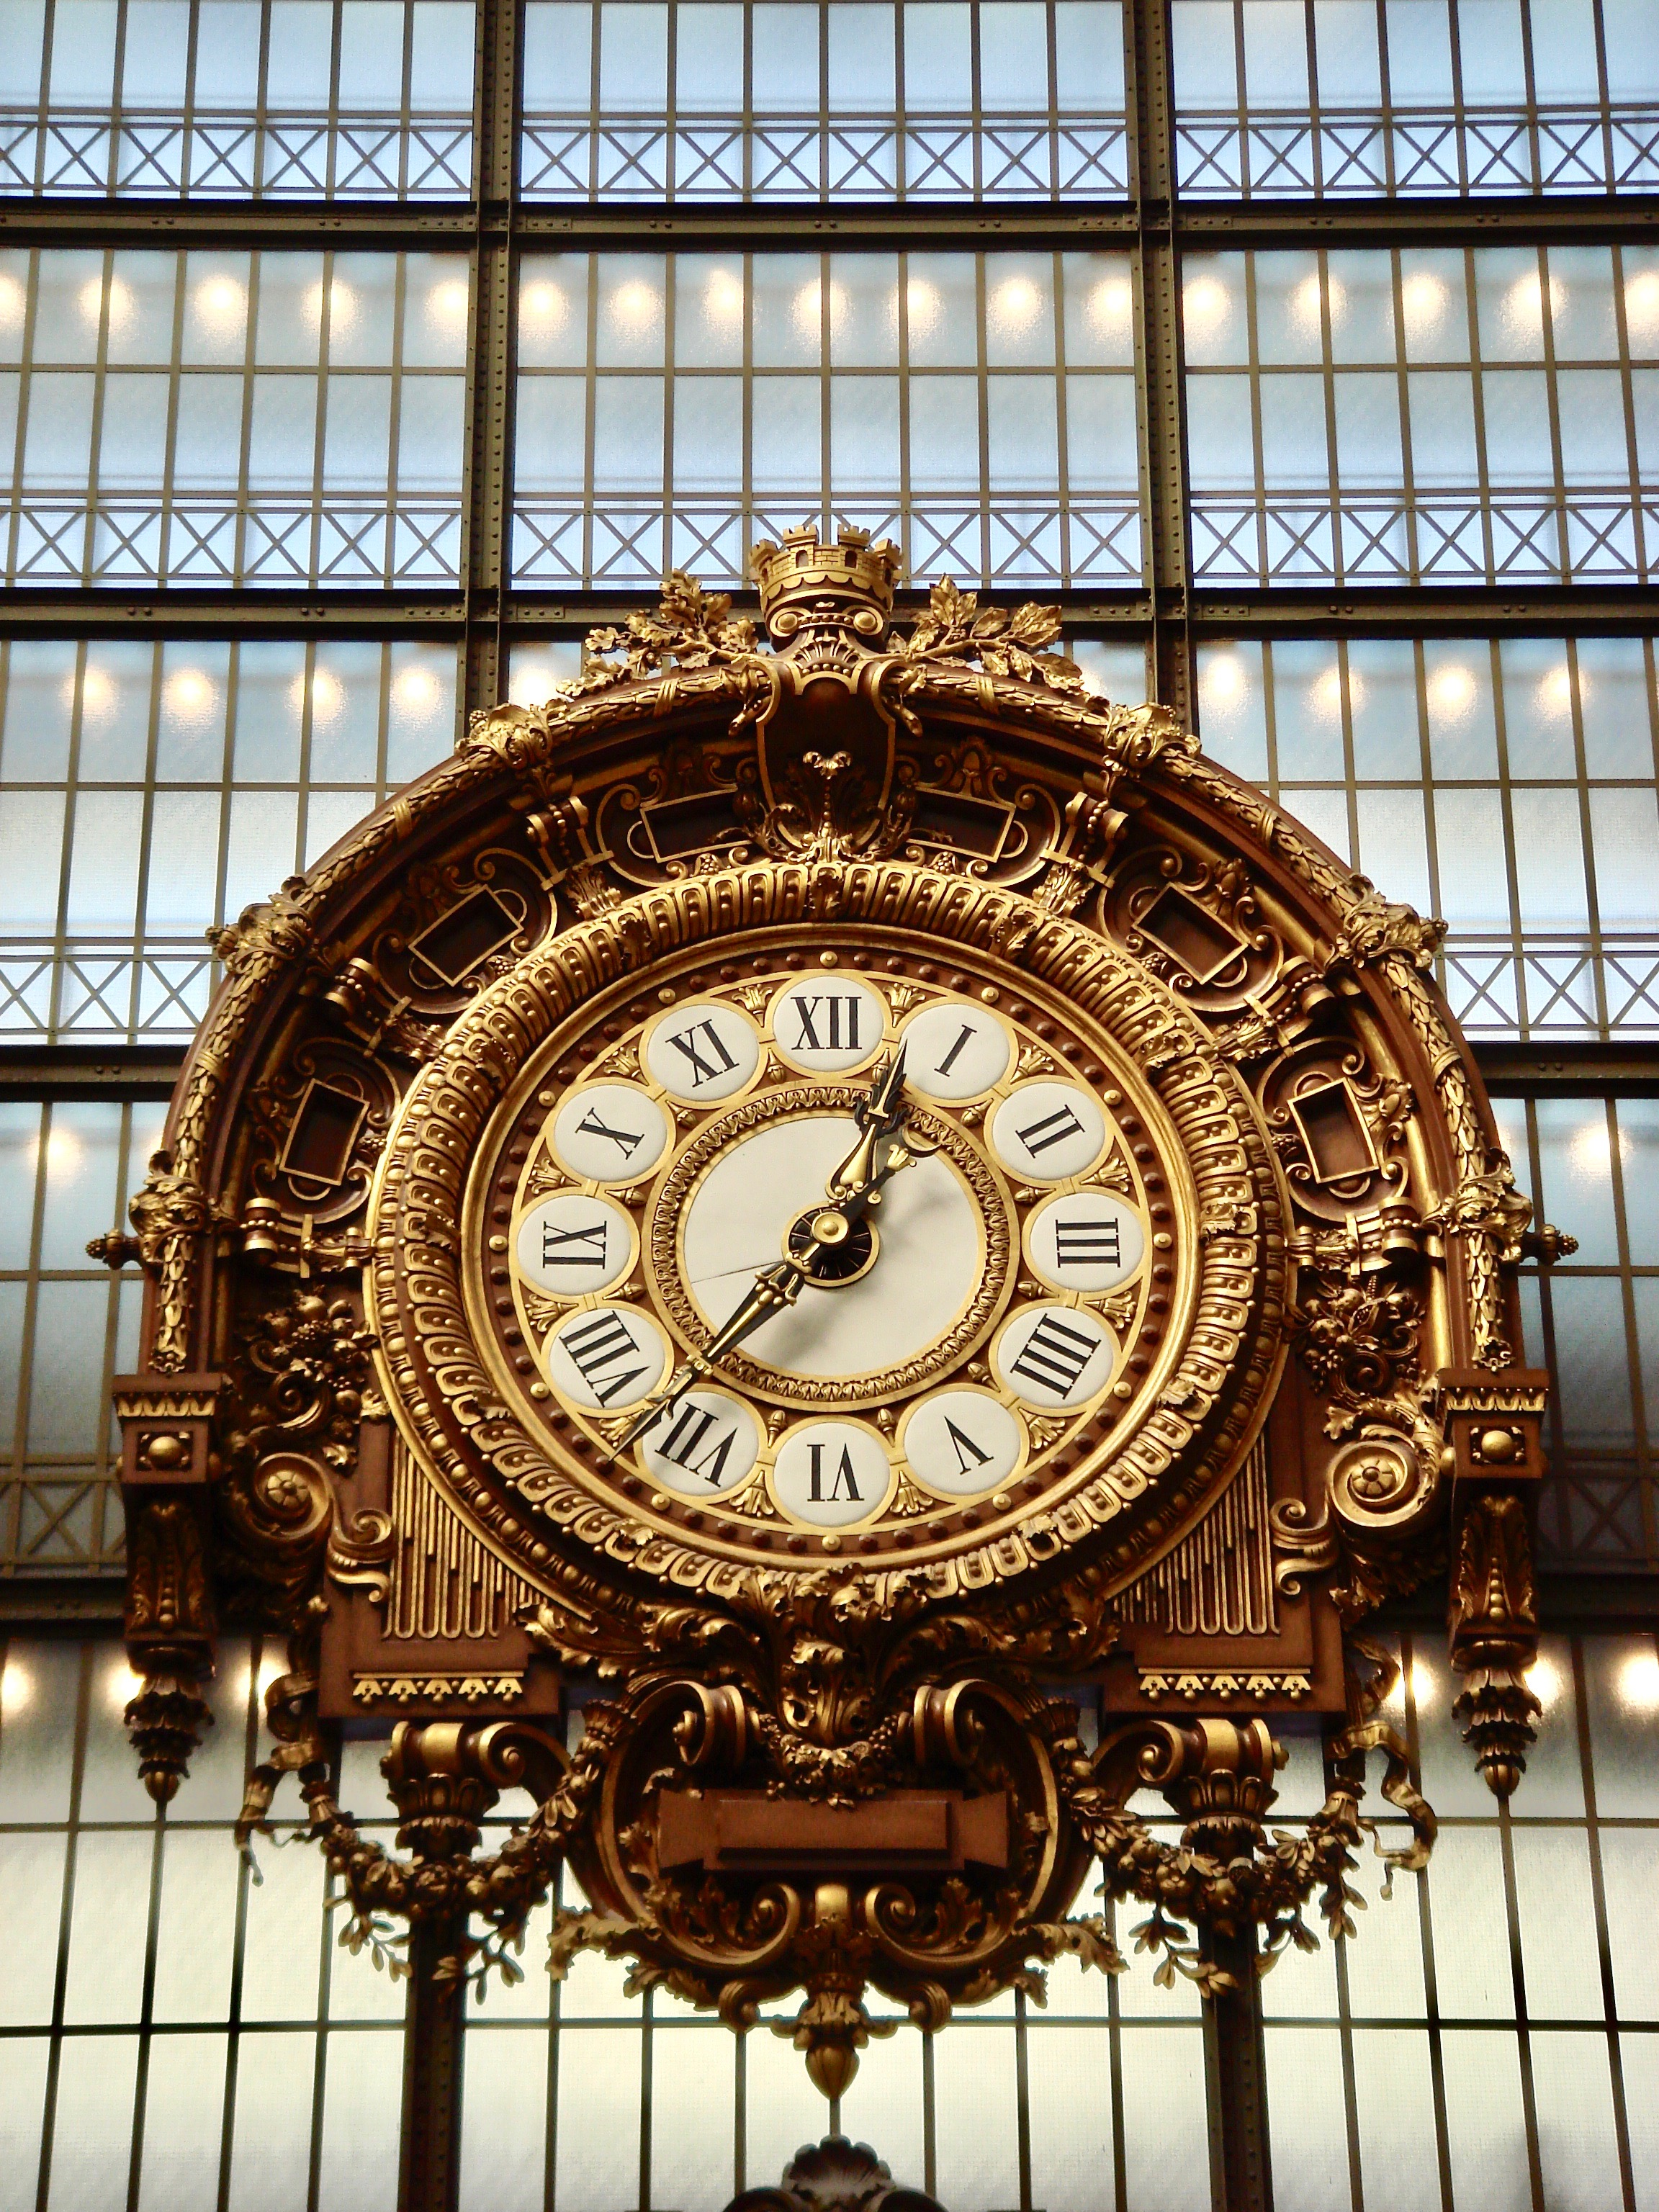 Art Galleries You Must Visit in Paris Musee d'Orsay